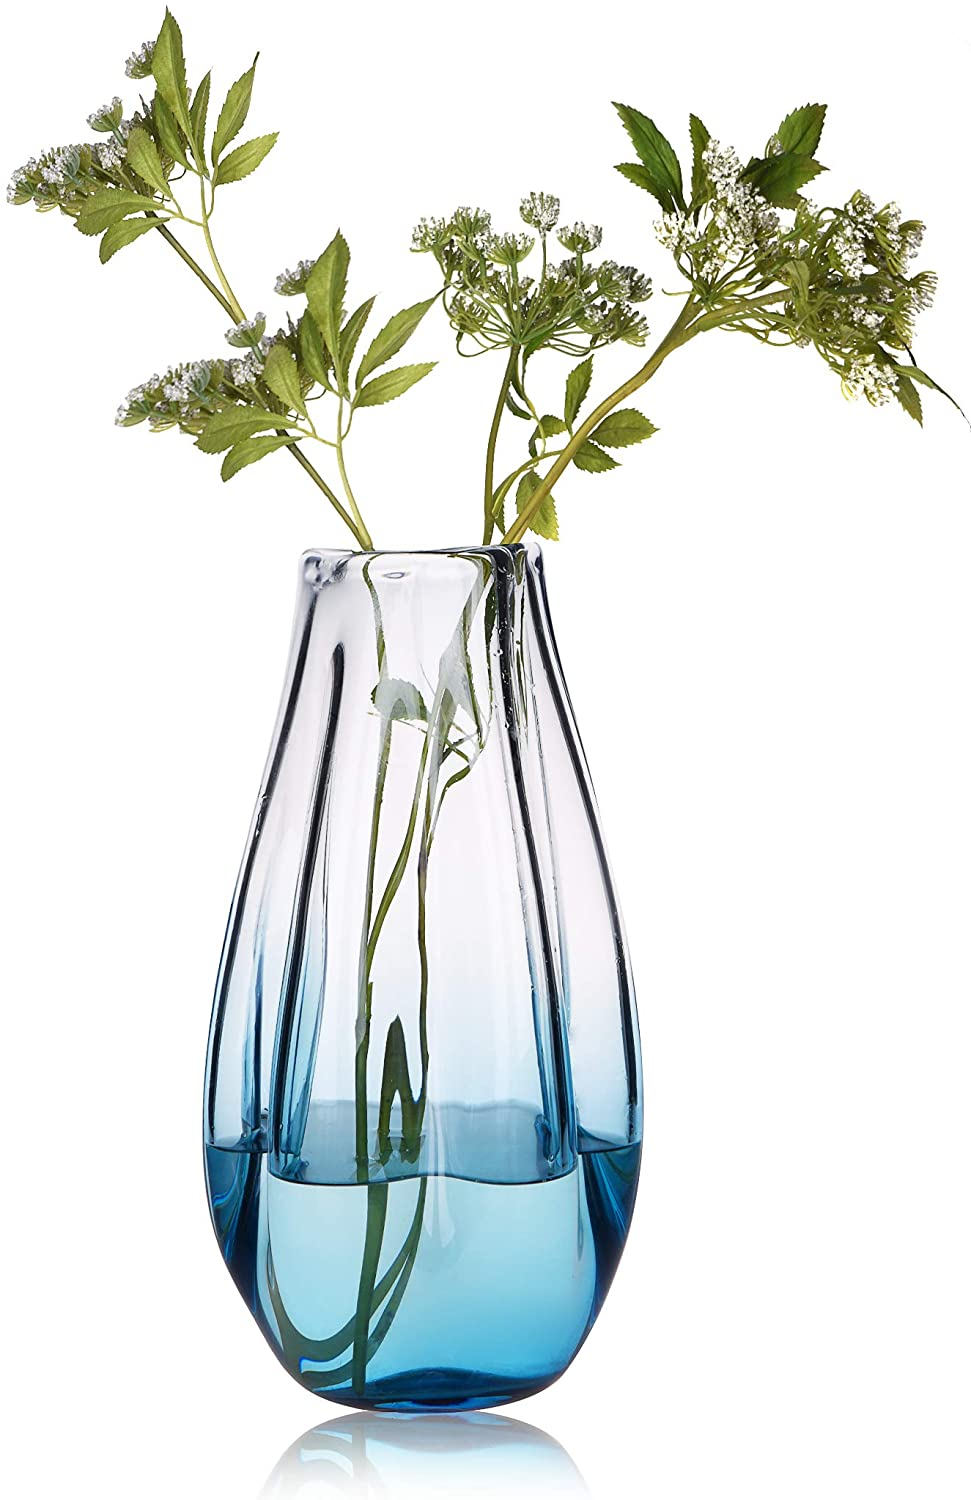 CONVIVA Glass Vase for Home Decor,Hand Blown Art Glass Tall Vase Organic Wrinkle Modern Flower Vase Centerpiece for Kitchen Table, Dining Room,Office Tabletop, Wedding Party,Blue 13 inch H